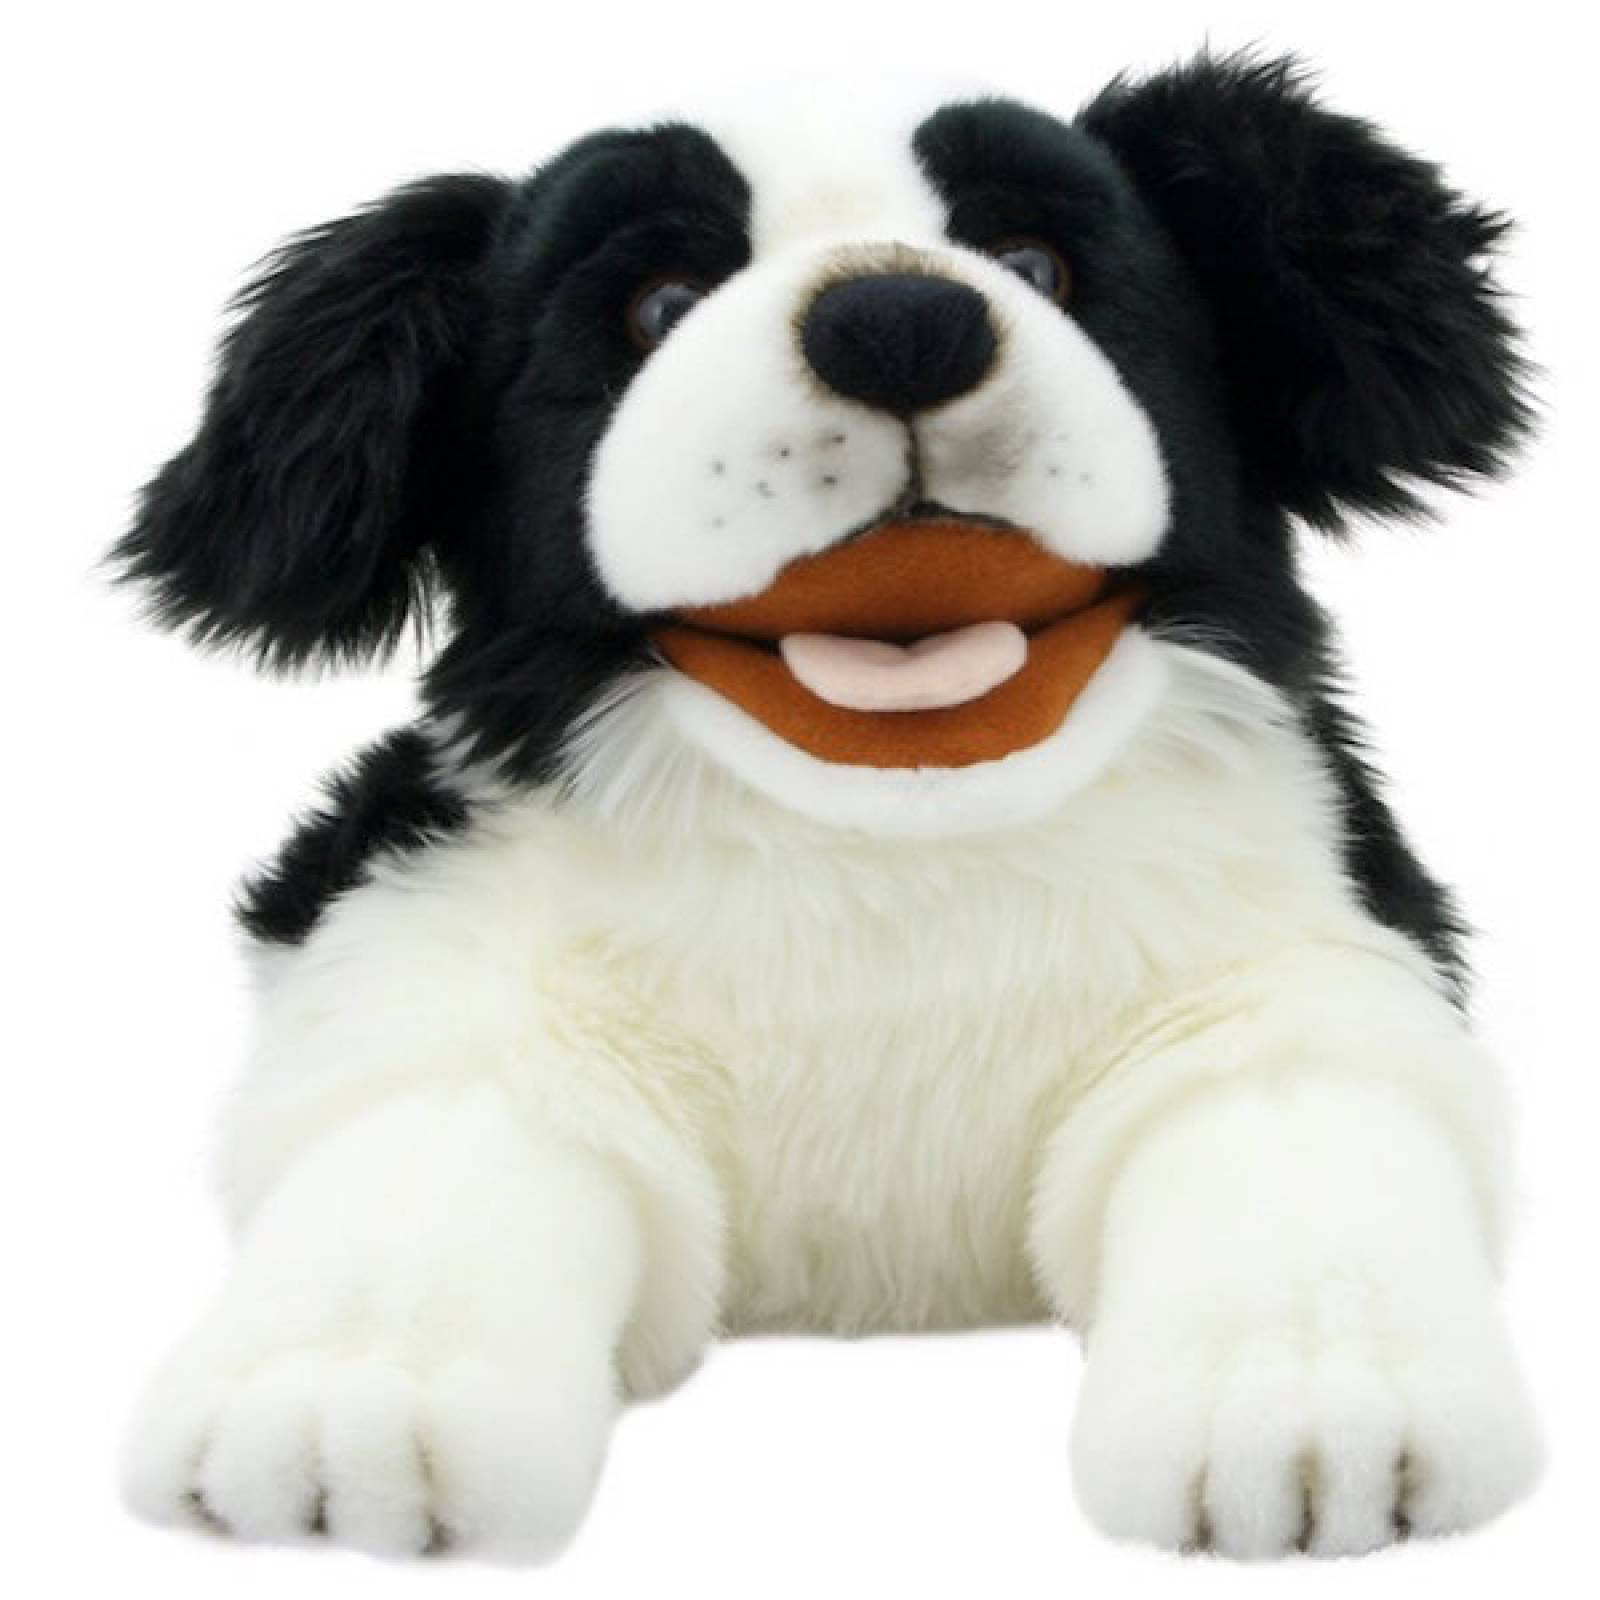 Border Collie Dog Playful Puppy Glove Puppet